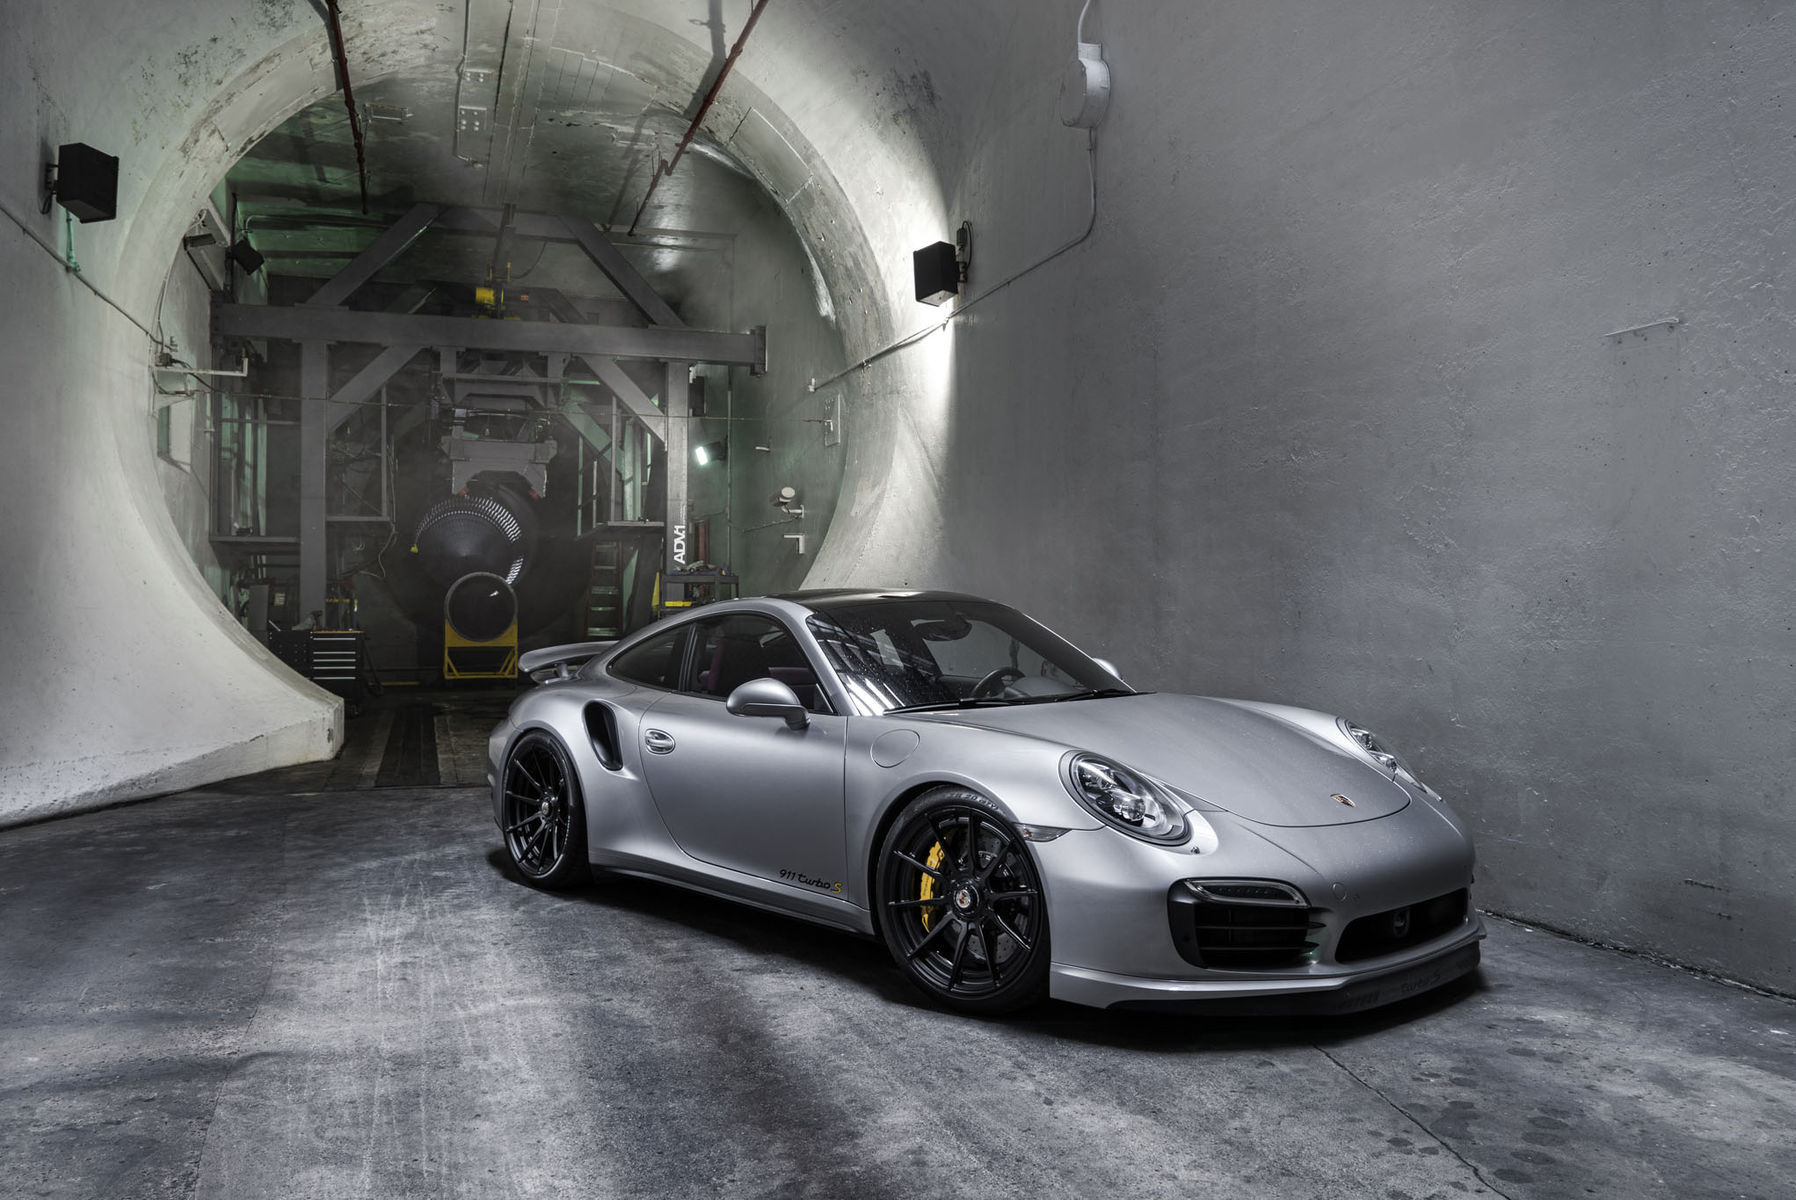 Porsche 911 | ADV.1 Wheels Porsche 911 Turbo S